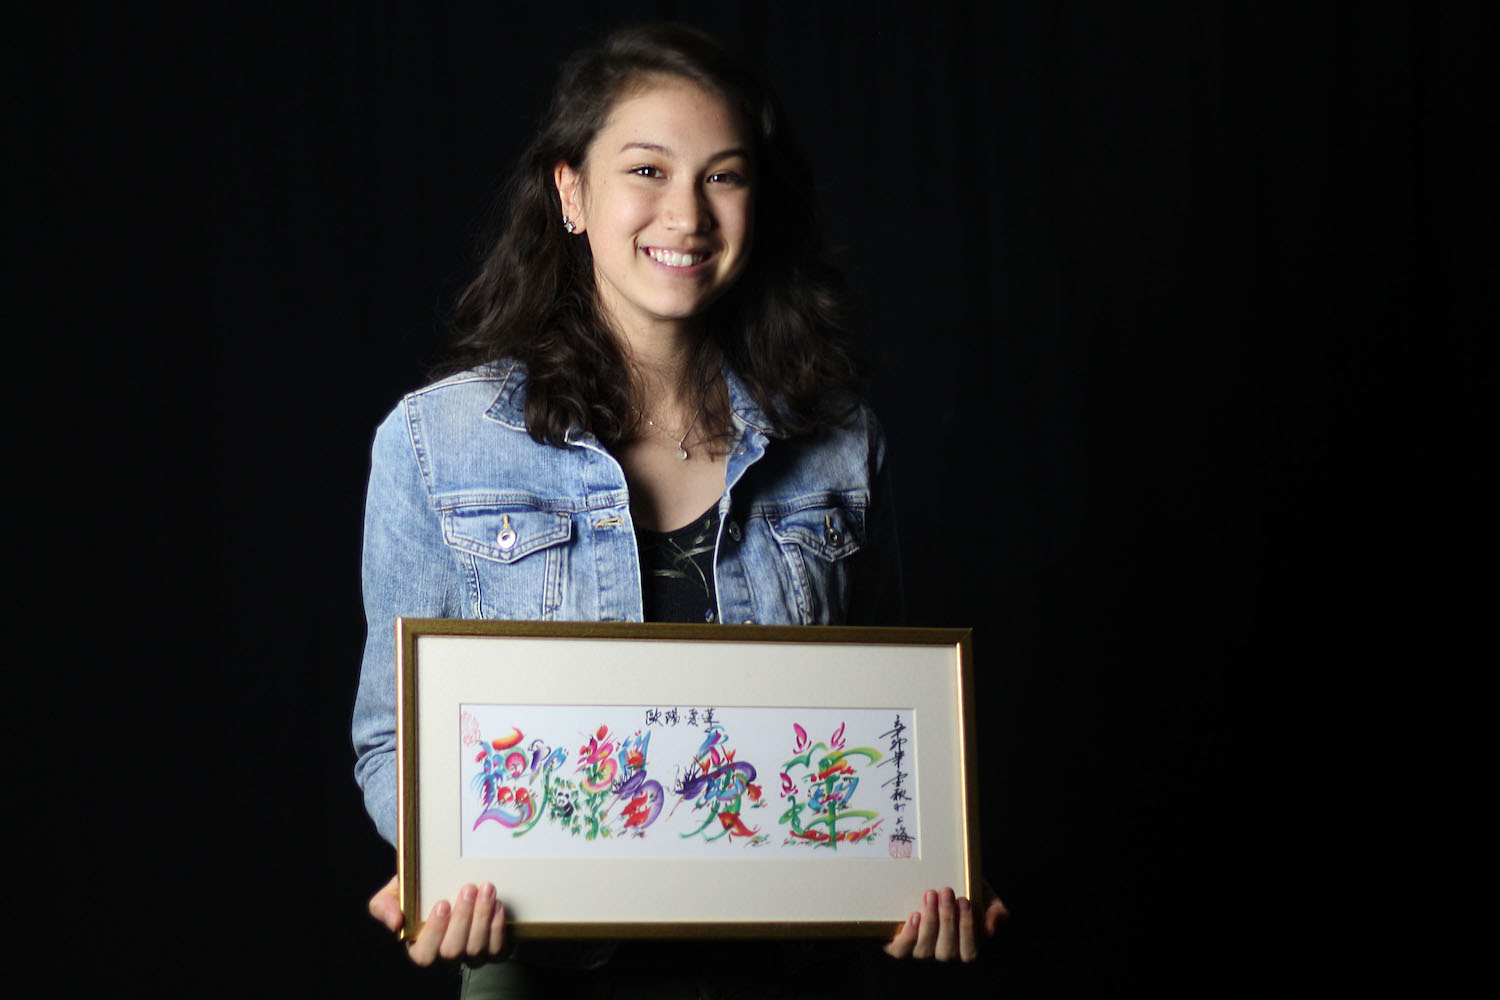 Arianne Ohman poses with a painting of her name in chinese.